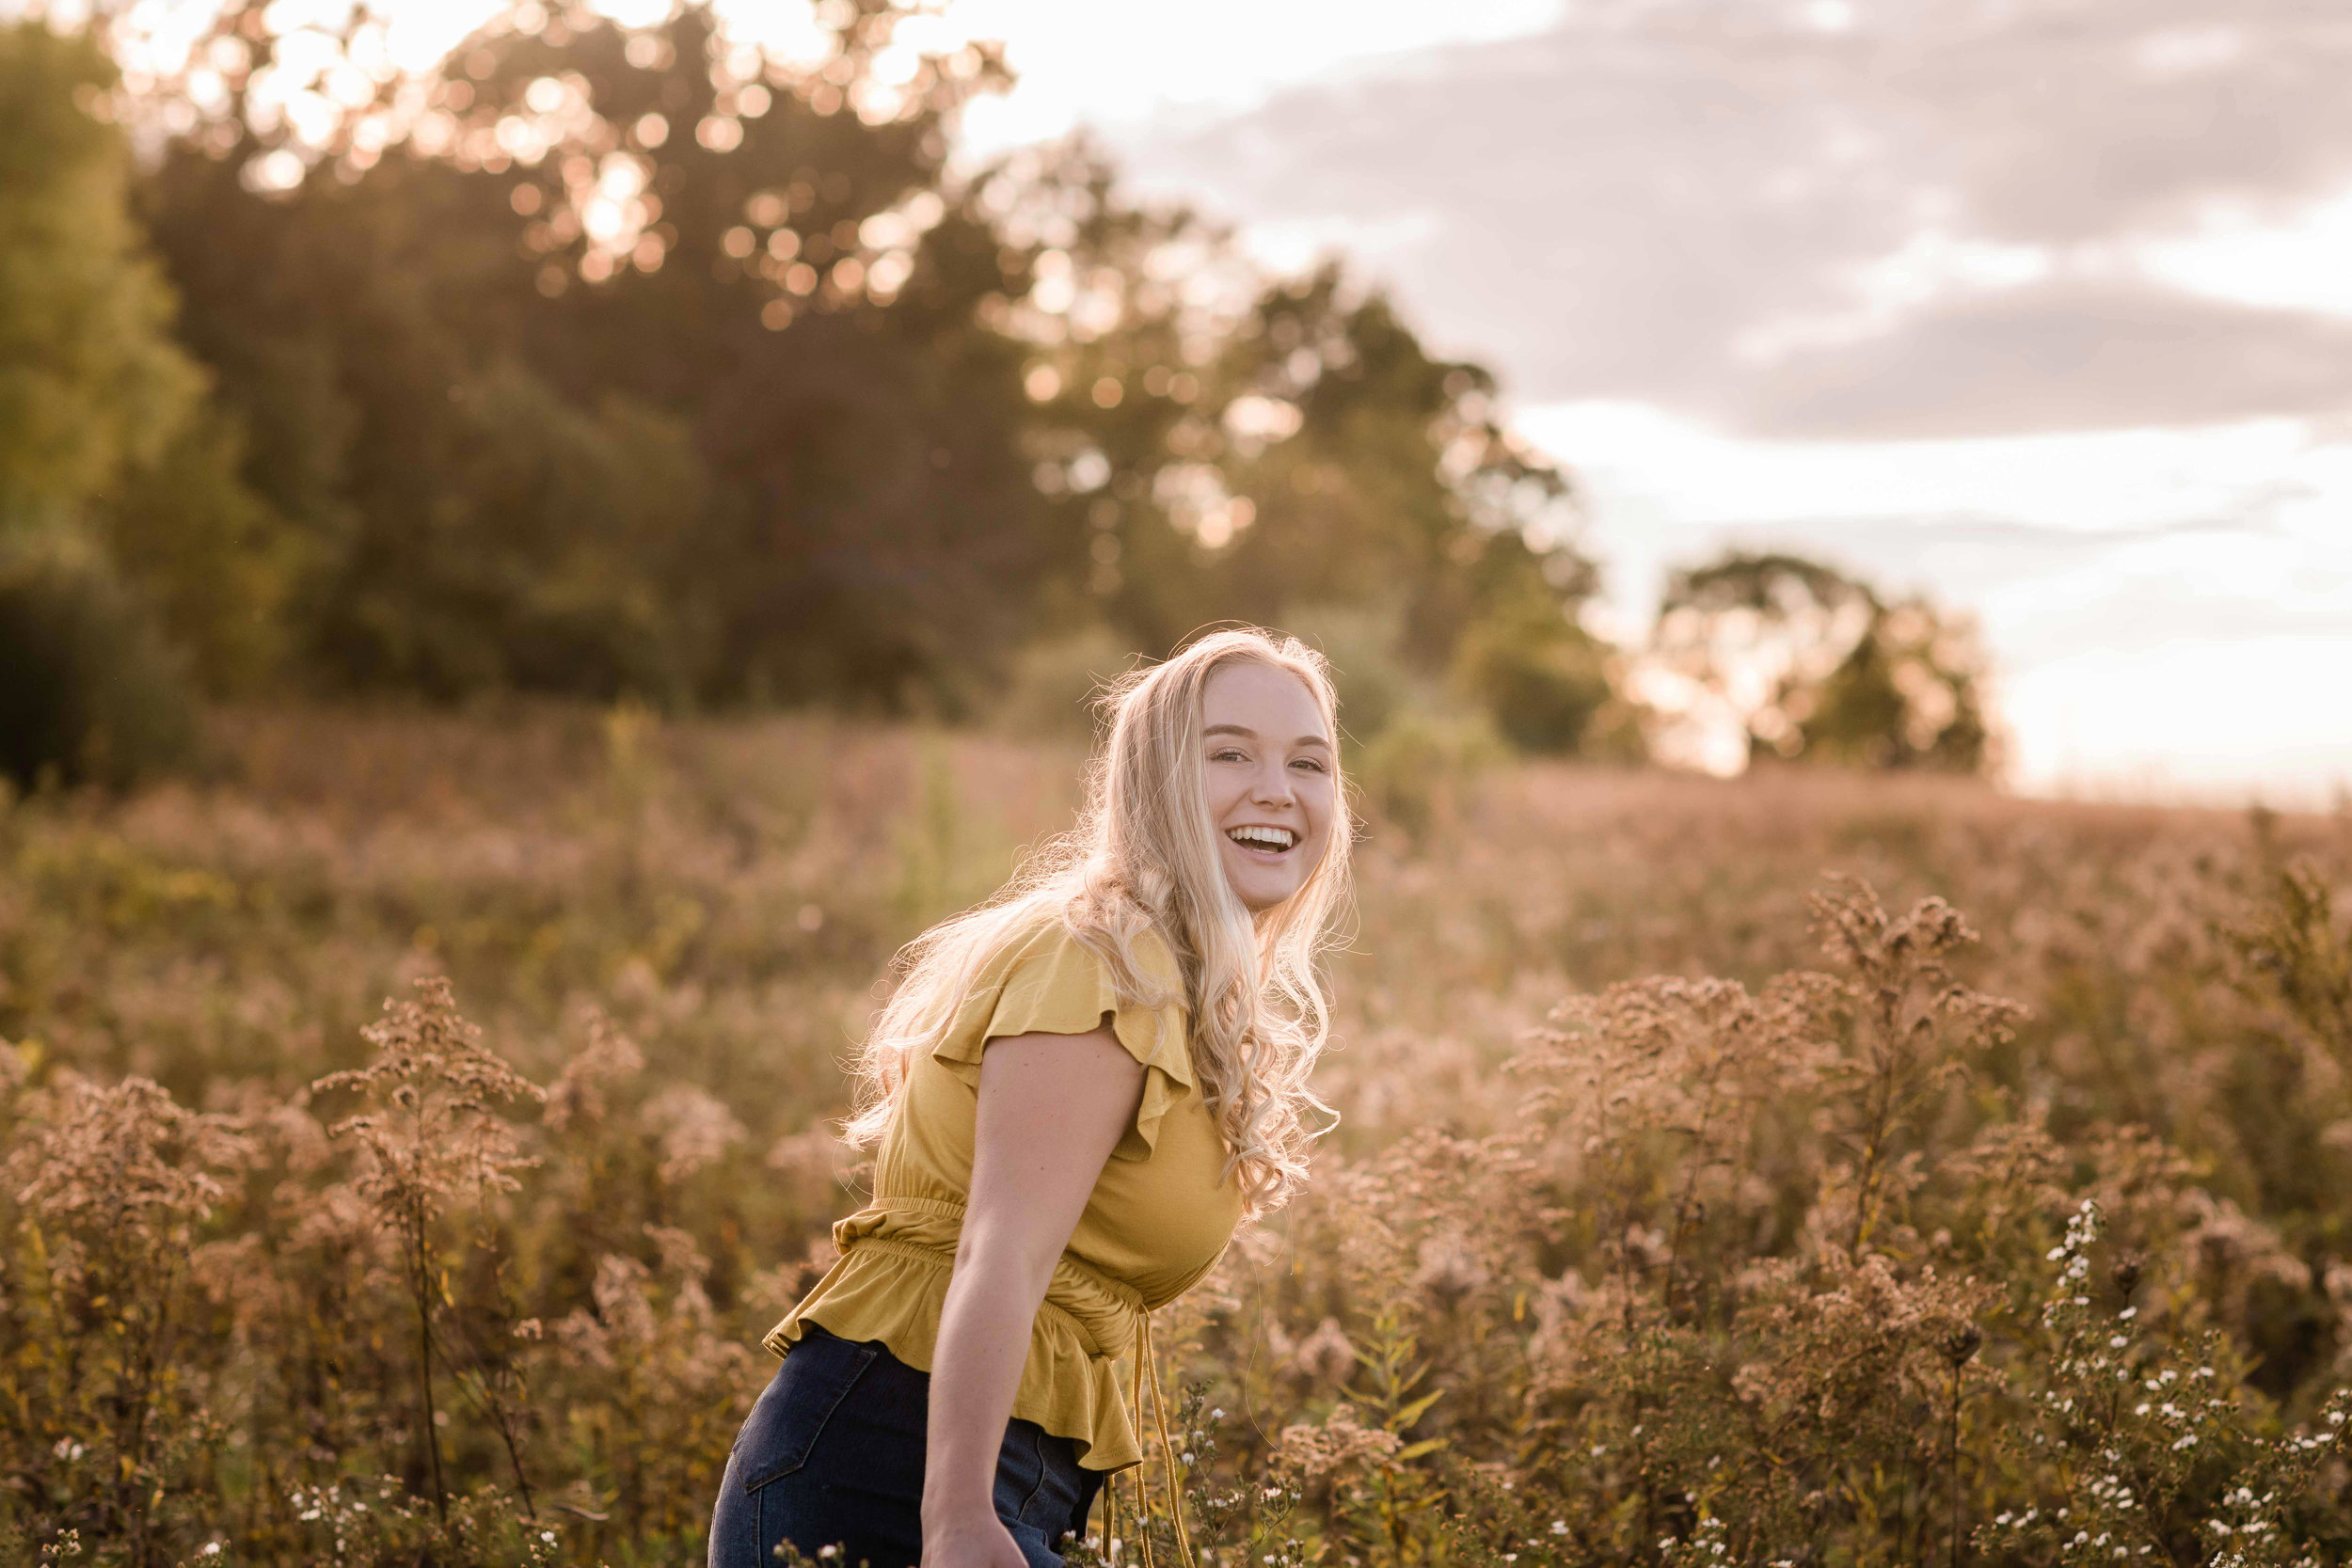 High school senior walking through a field